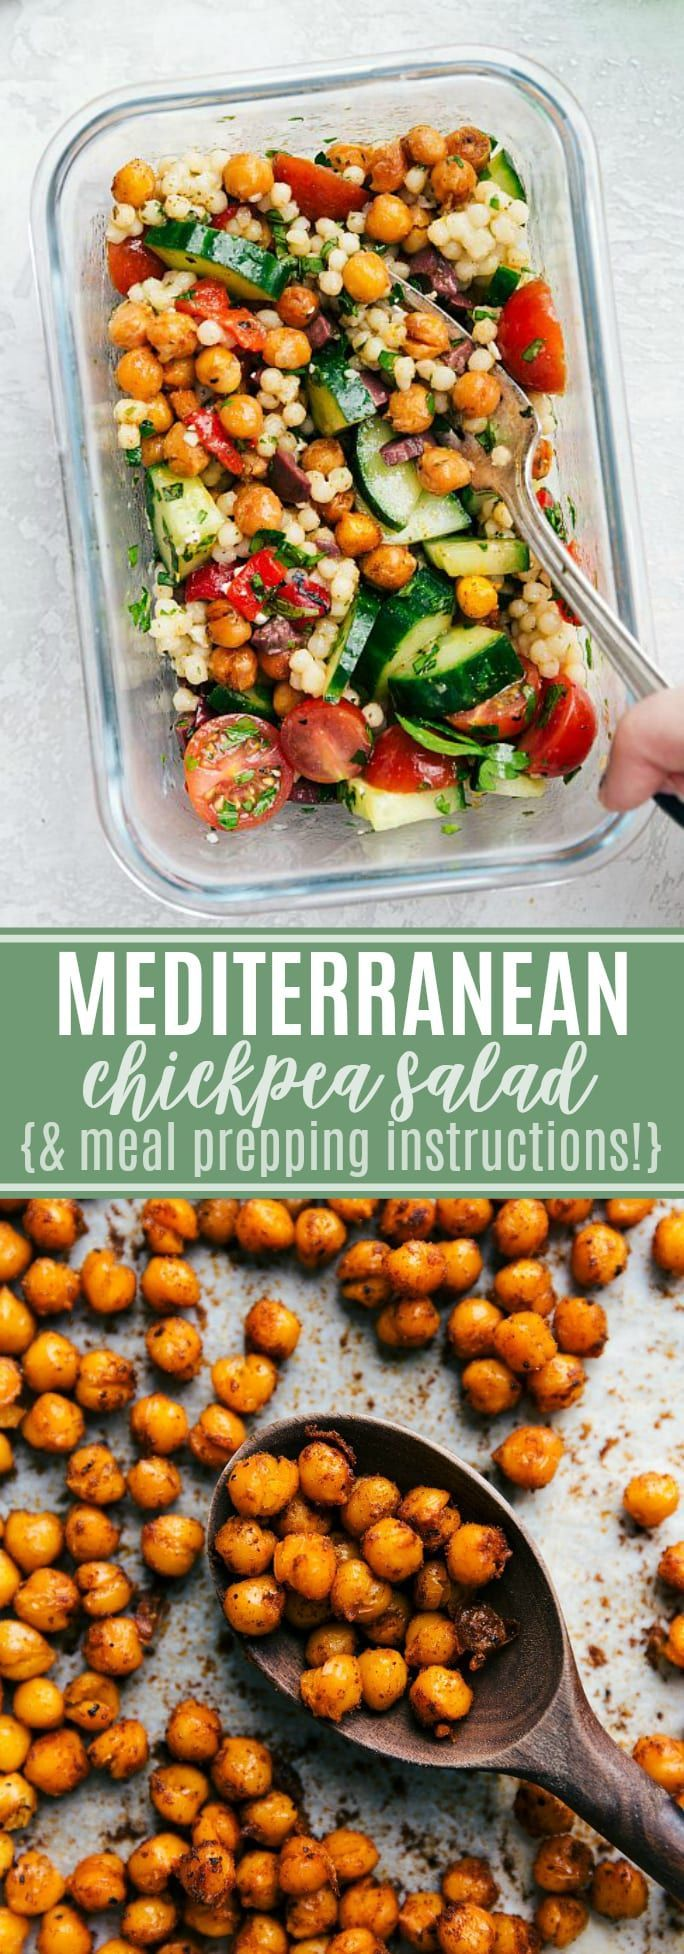 This chickpea salad is so flavorful made with goodforyou ingredients  easy to prepare PLUS meal prepping instructions via